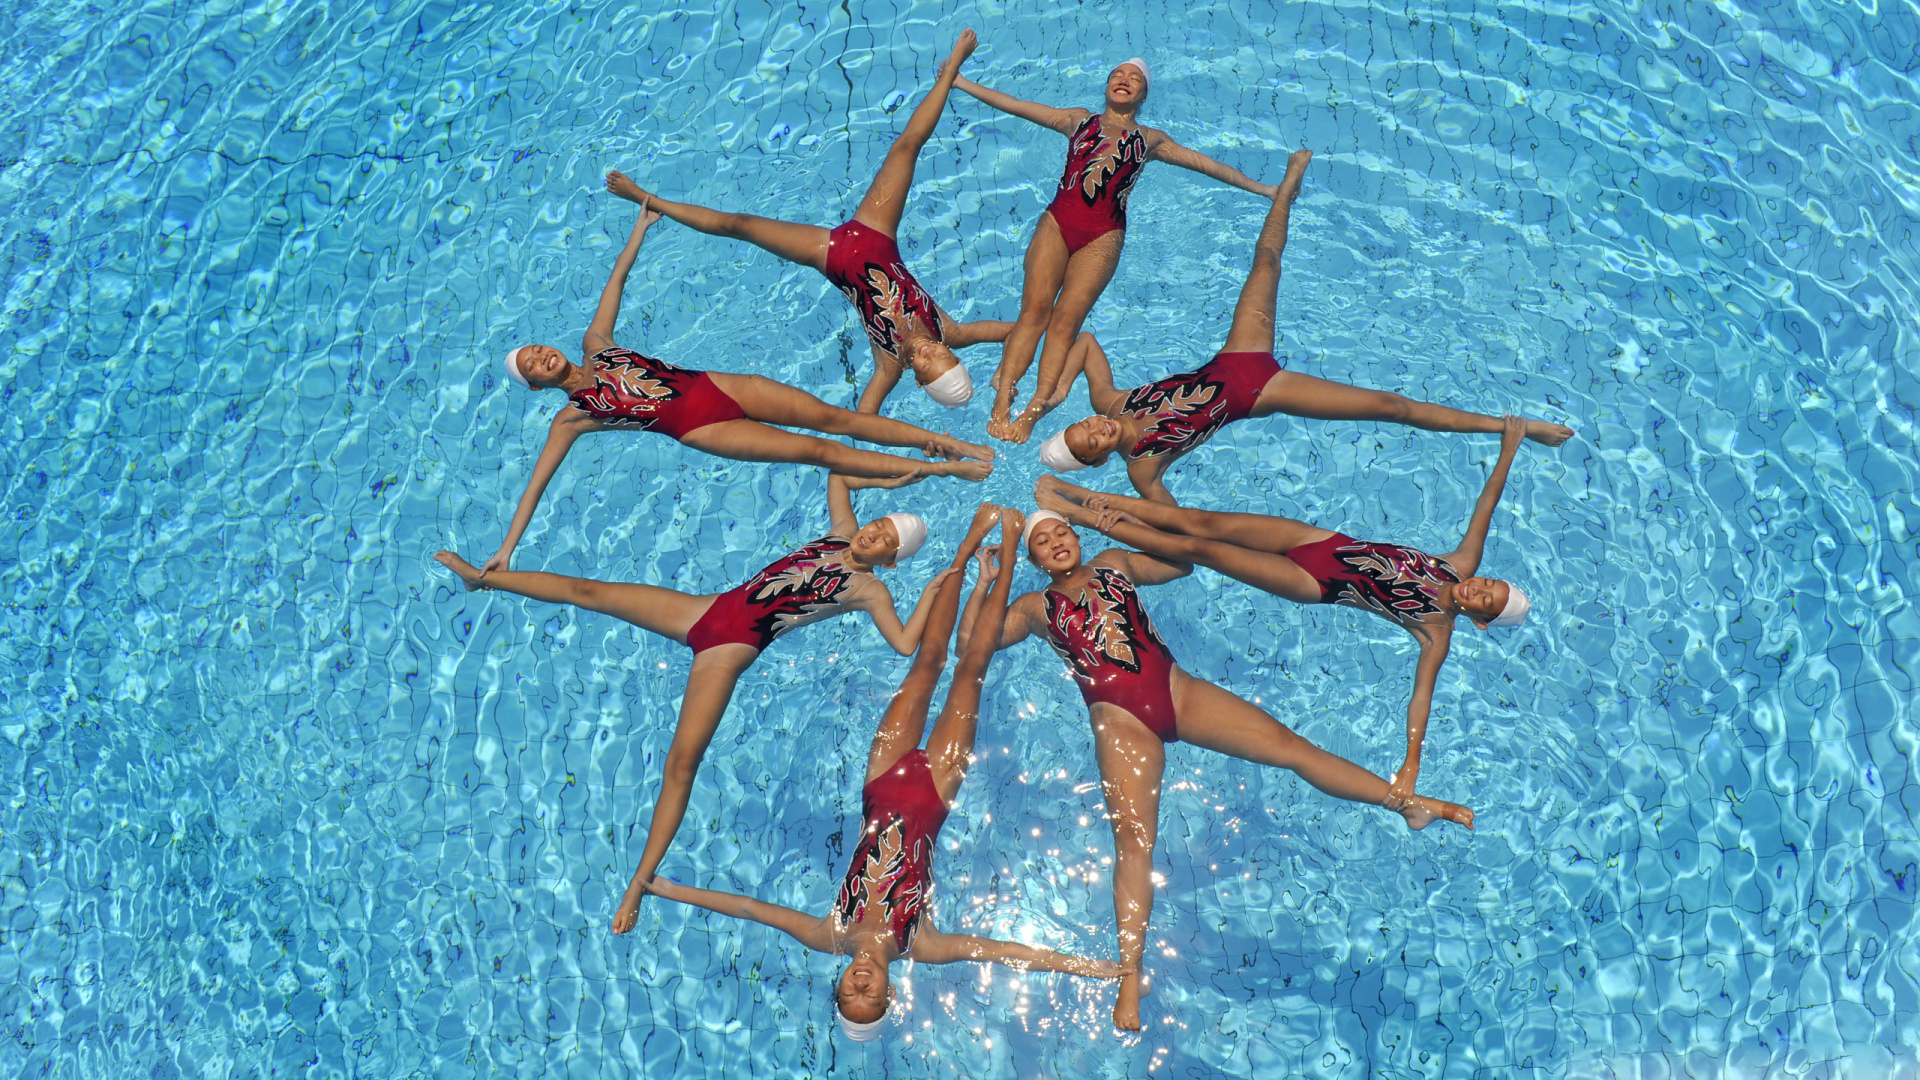 Synchronized Sports Swimming Pool HD Image